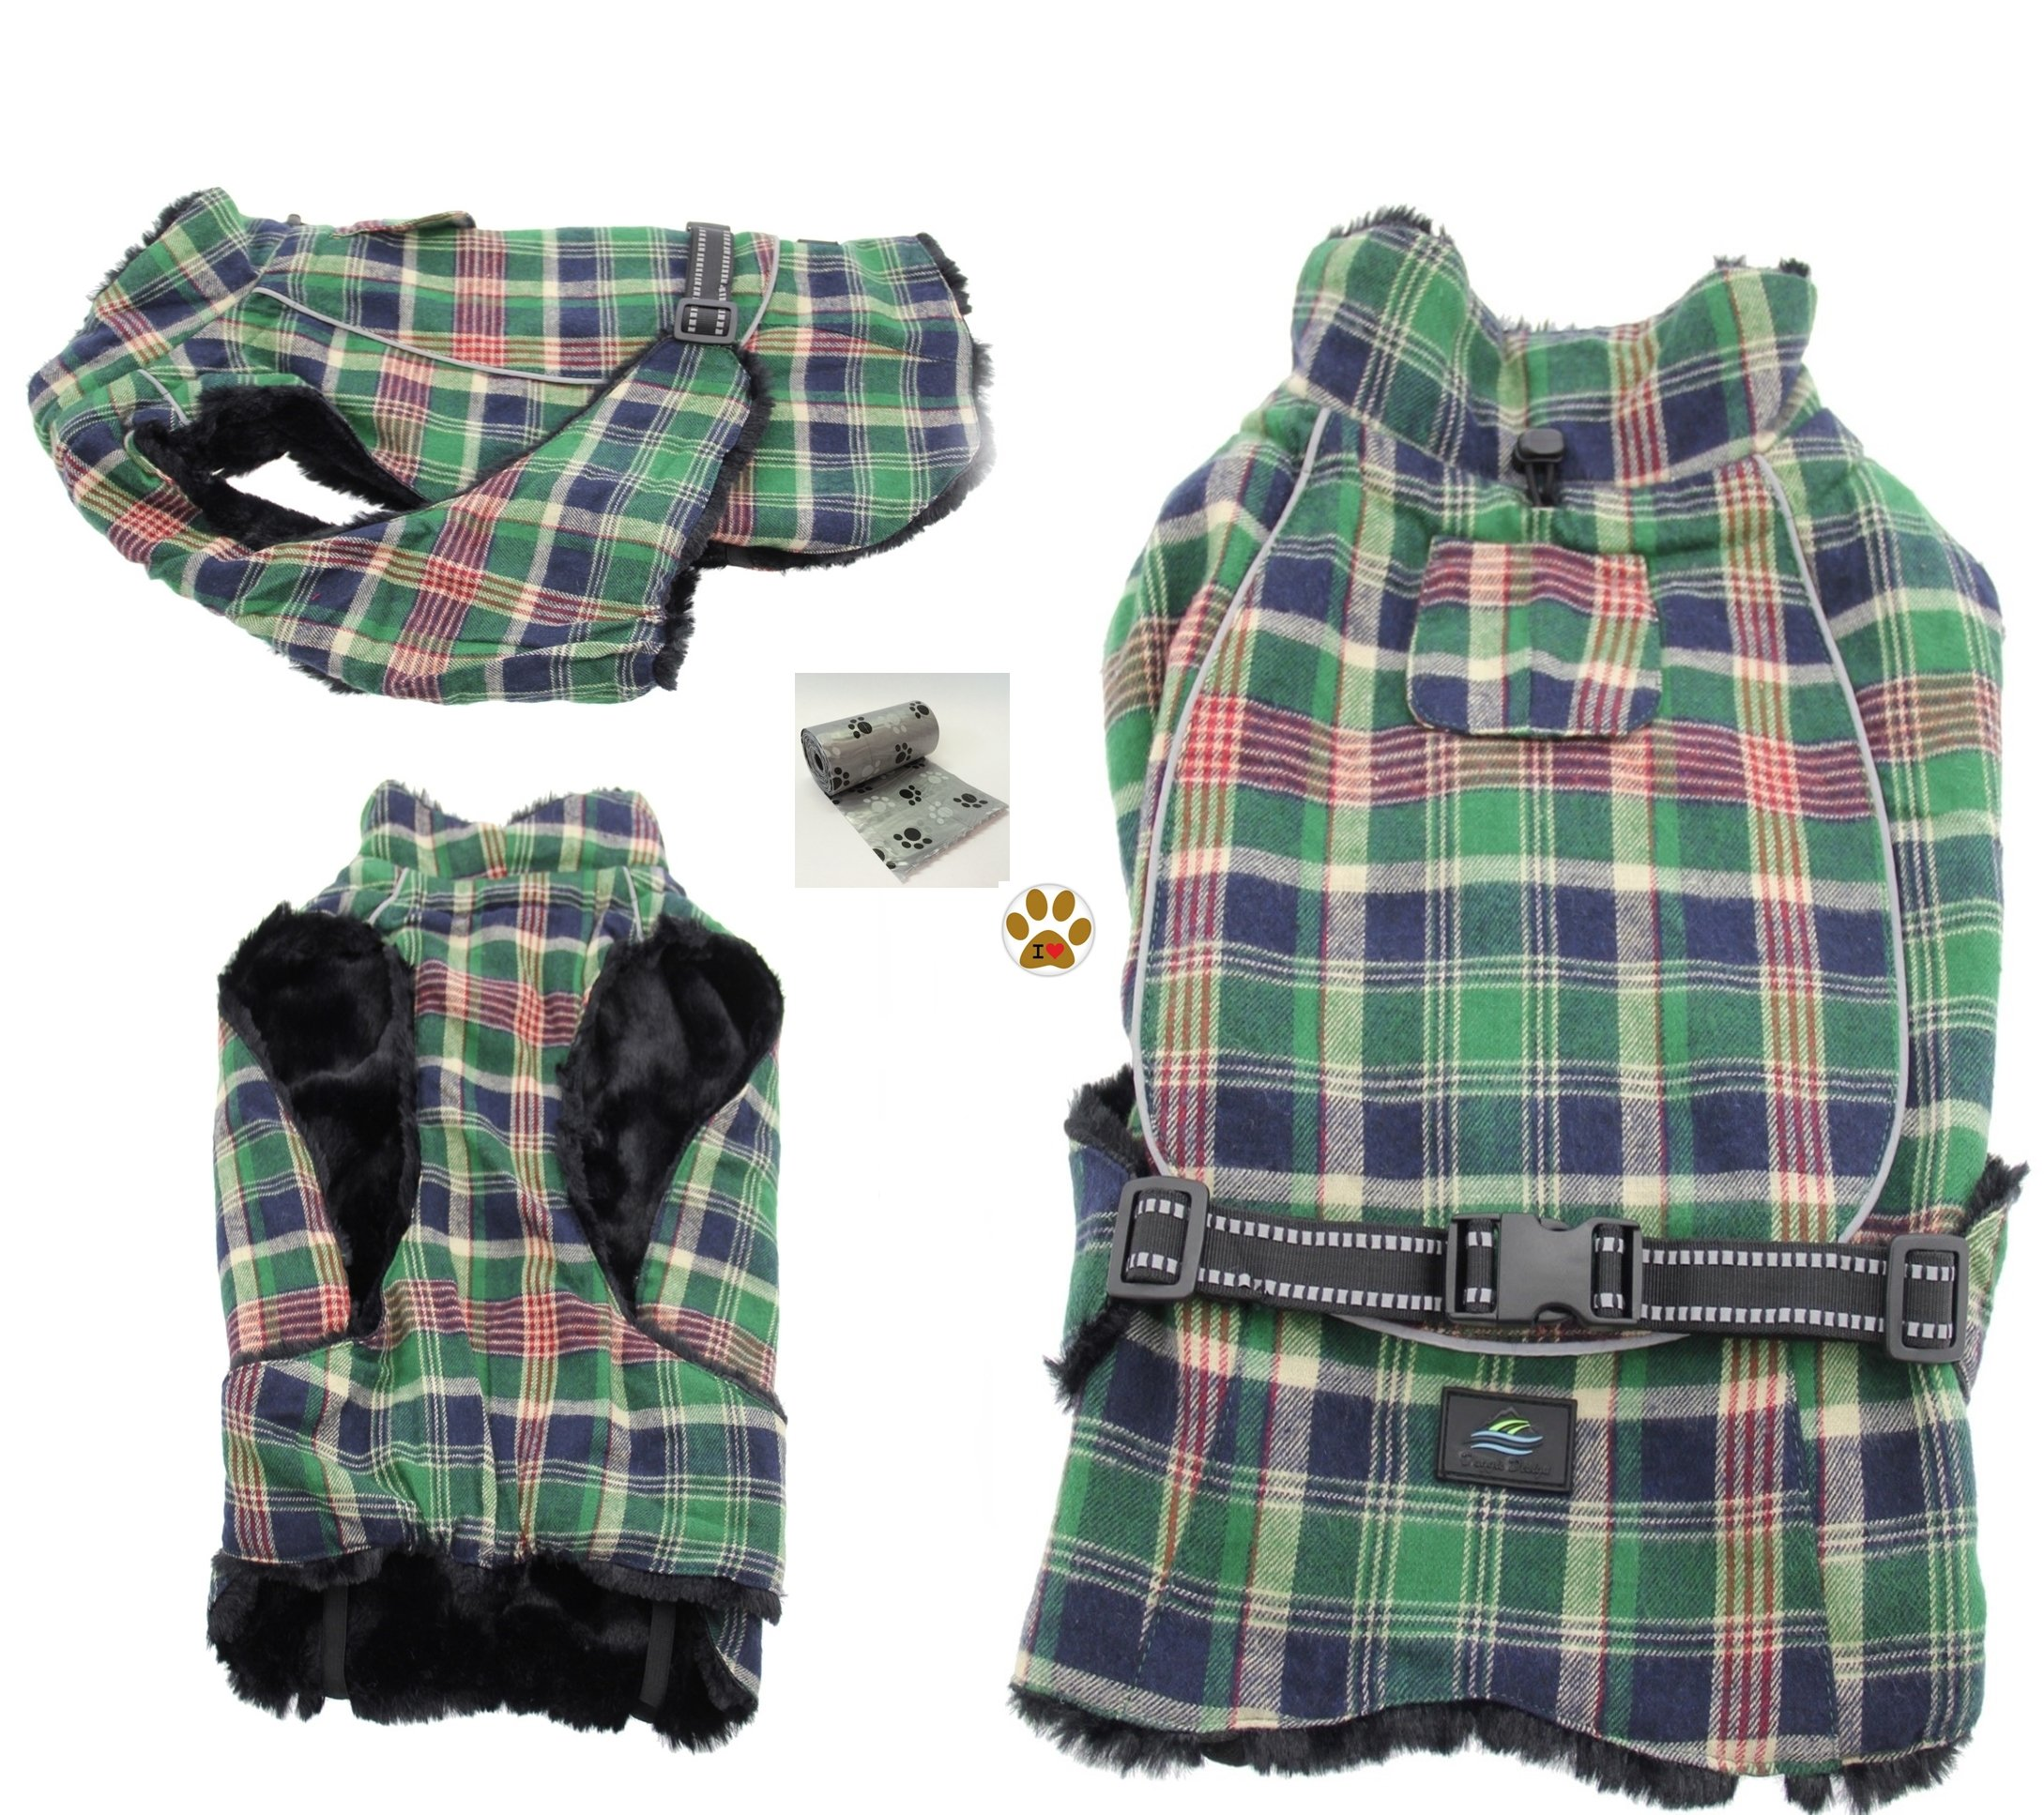 Alpine Cold Weather Flannel Plaid Fur Lined Pinned Dog Coat with Bags Set - (5XL - Chest 37-40'', Neck 30-32'', Back 30'', Green/Blue) by DOGGIE DESIGN (Image #1)